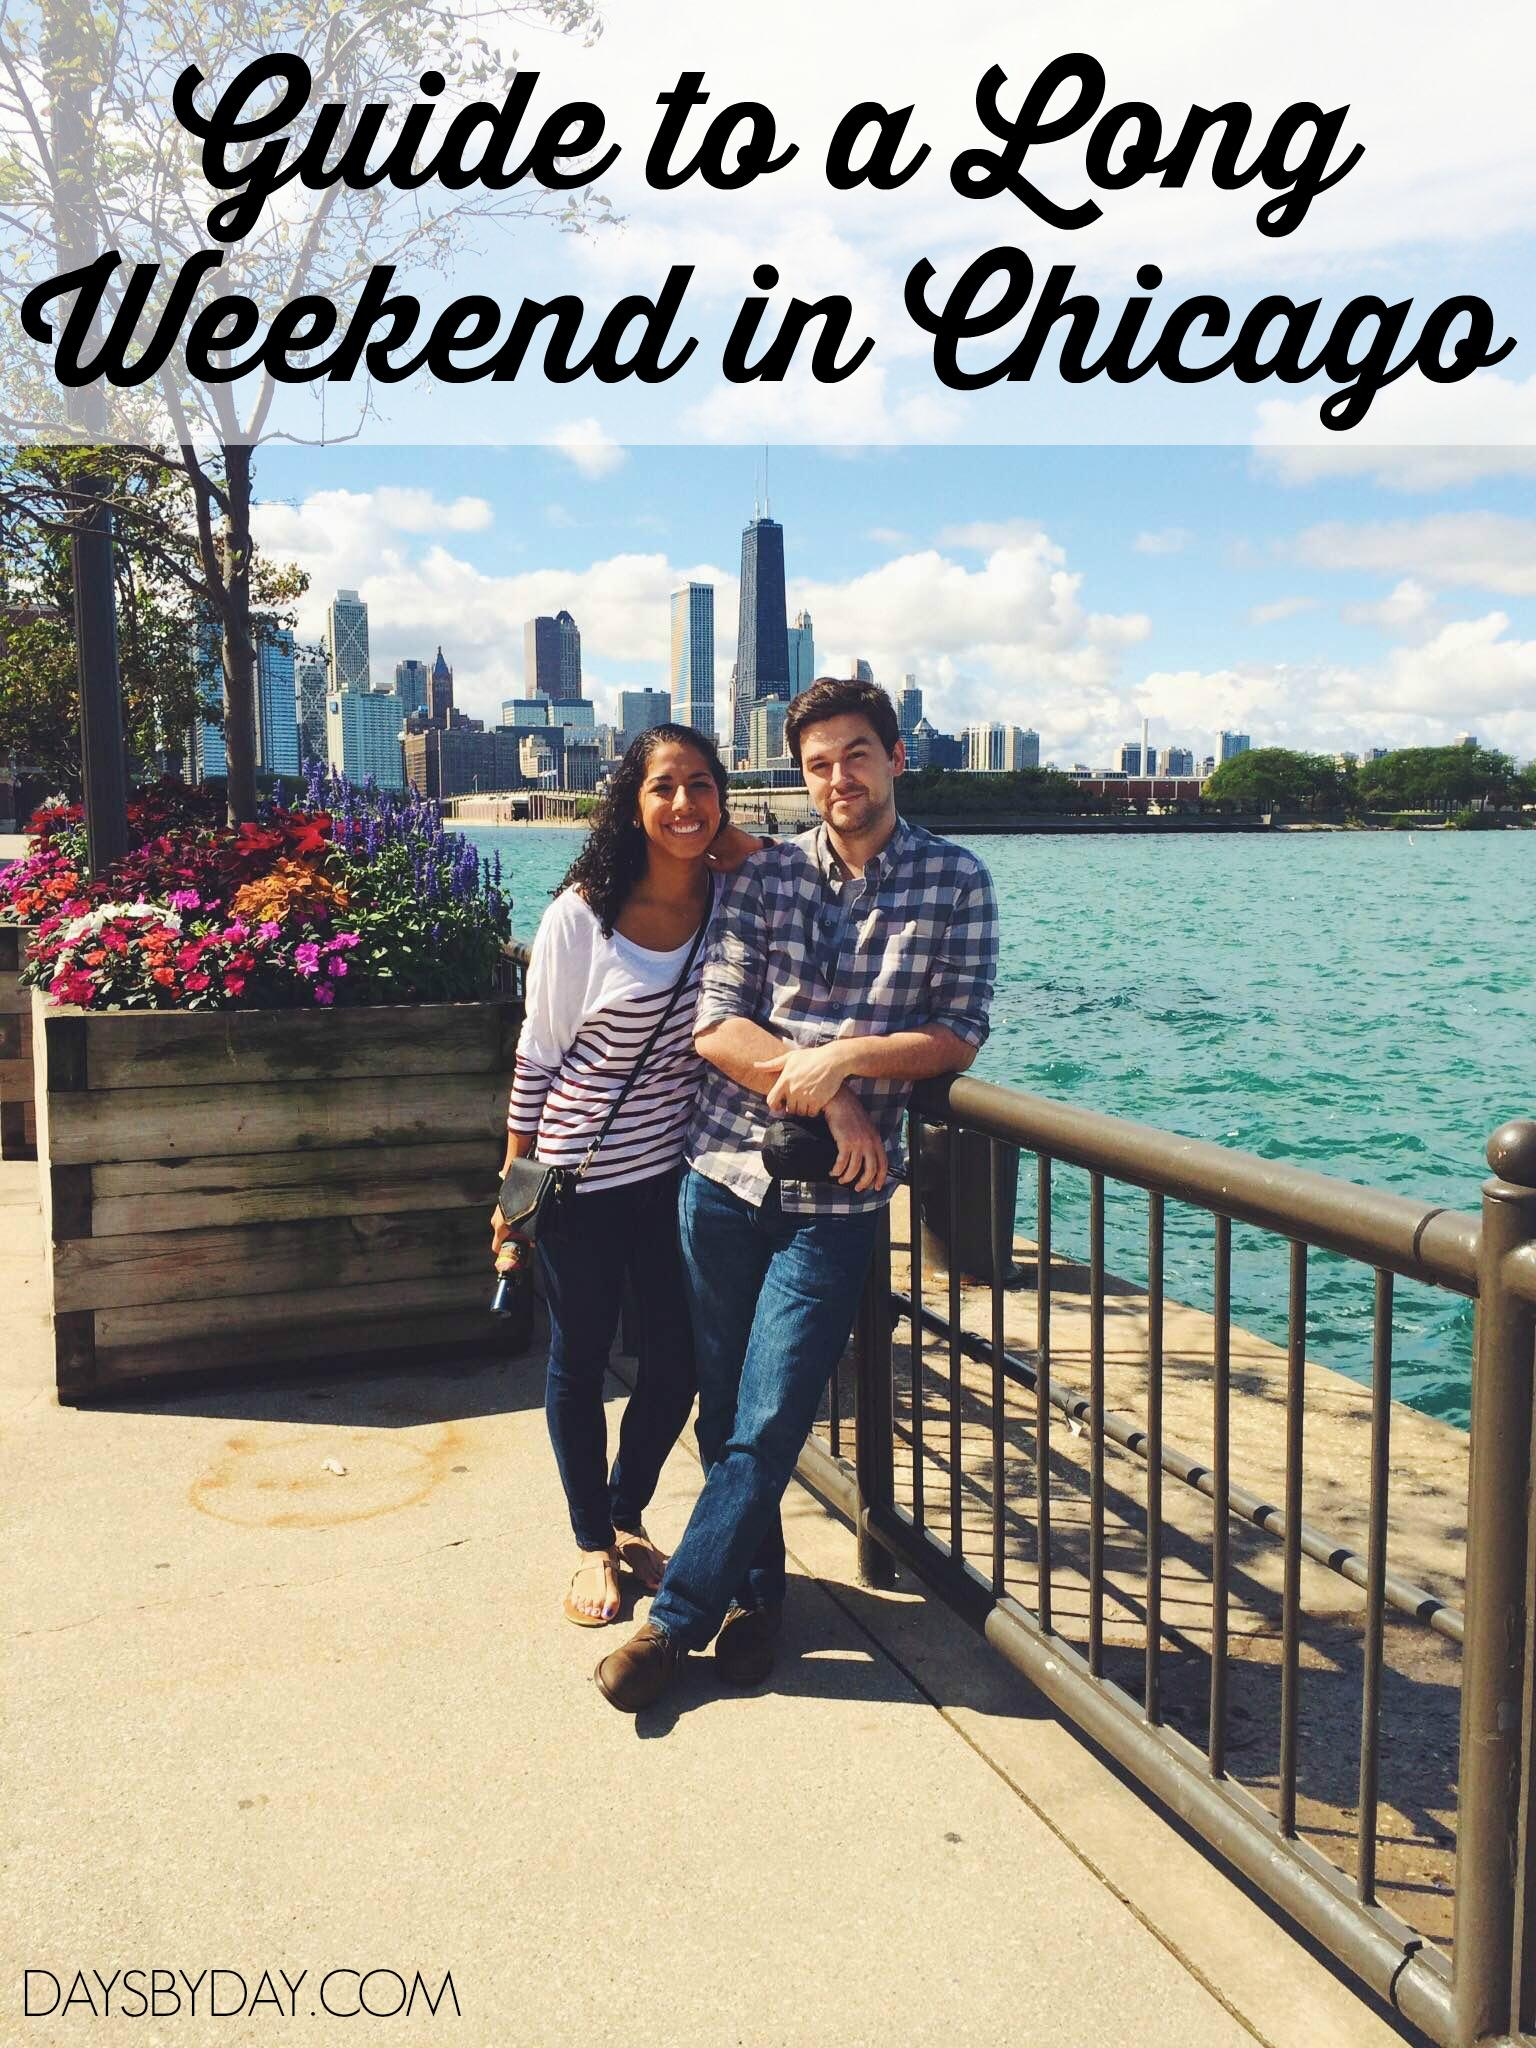 Guide to Long Weekend in Chicago